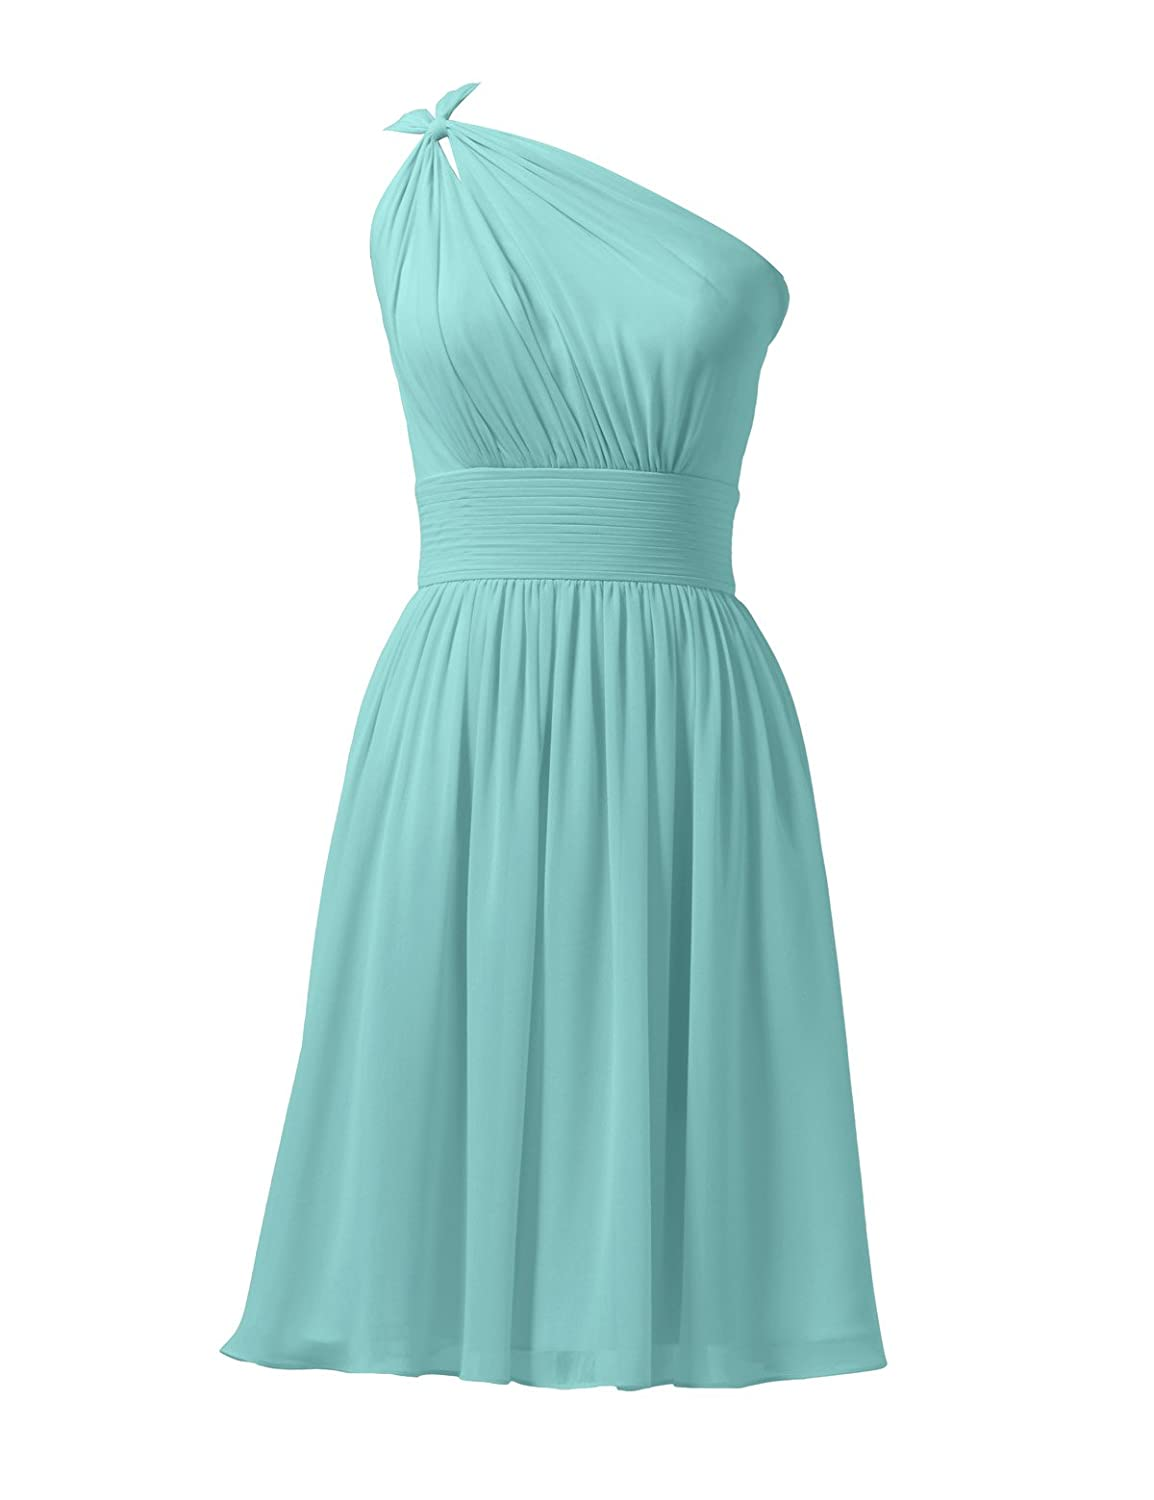 3ffd9888f8f Turquoise Bridesmaid Dress Short